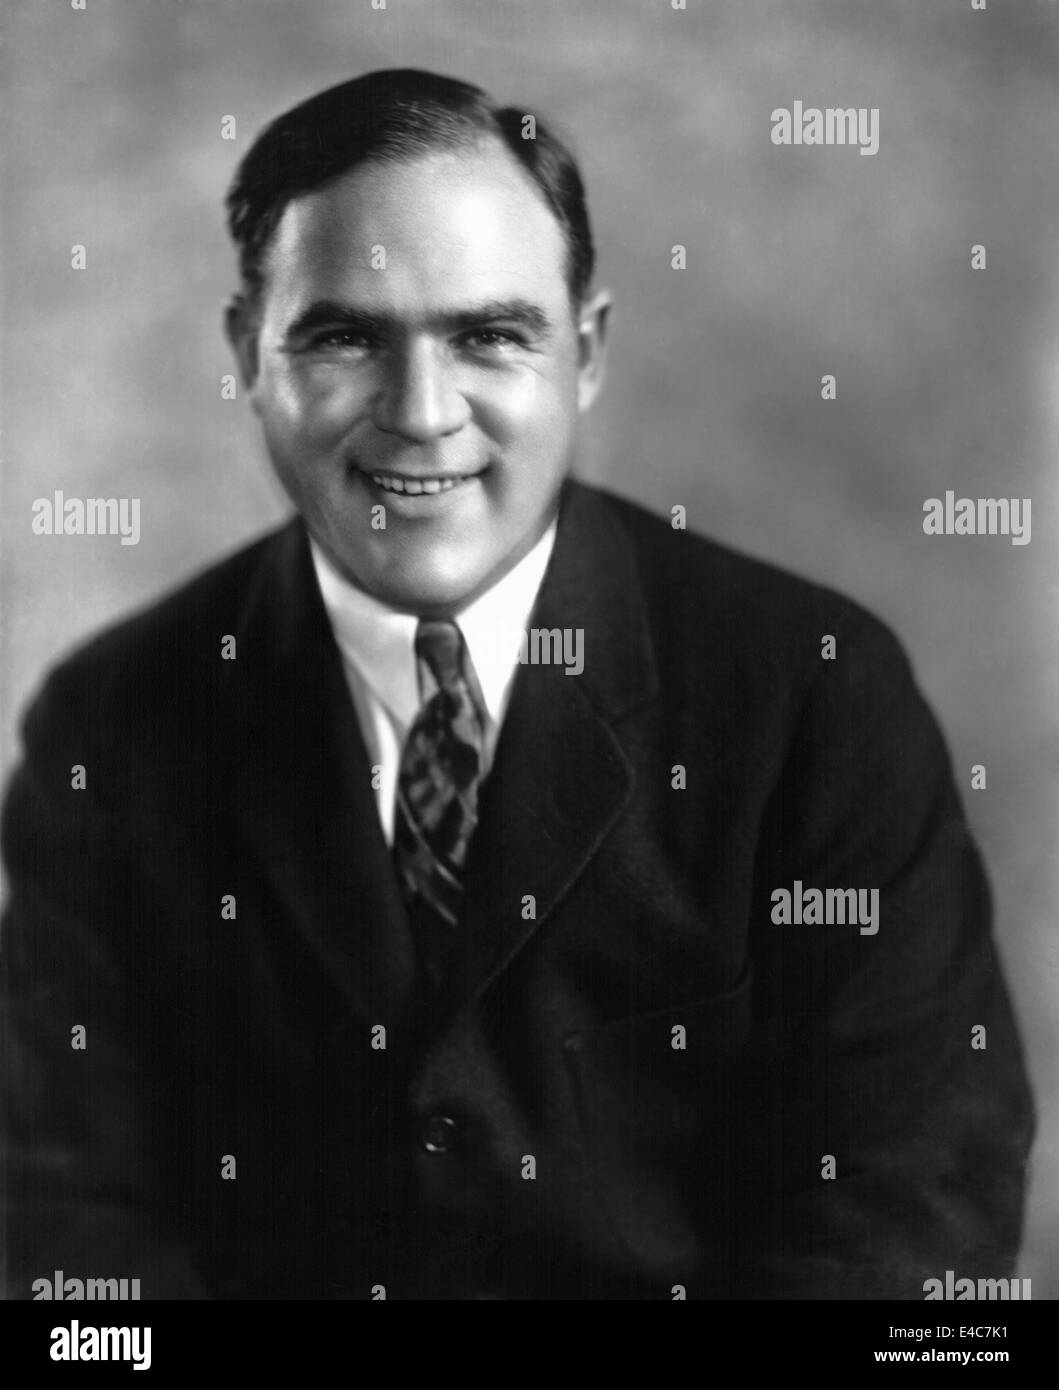 Hal Roach (1892-1992), American Film and Television Producer, Director, and Actor, Portrait, circa 1930's - Stock Image